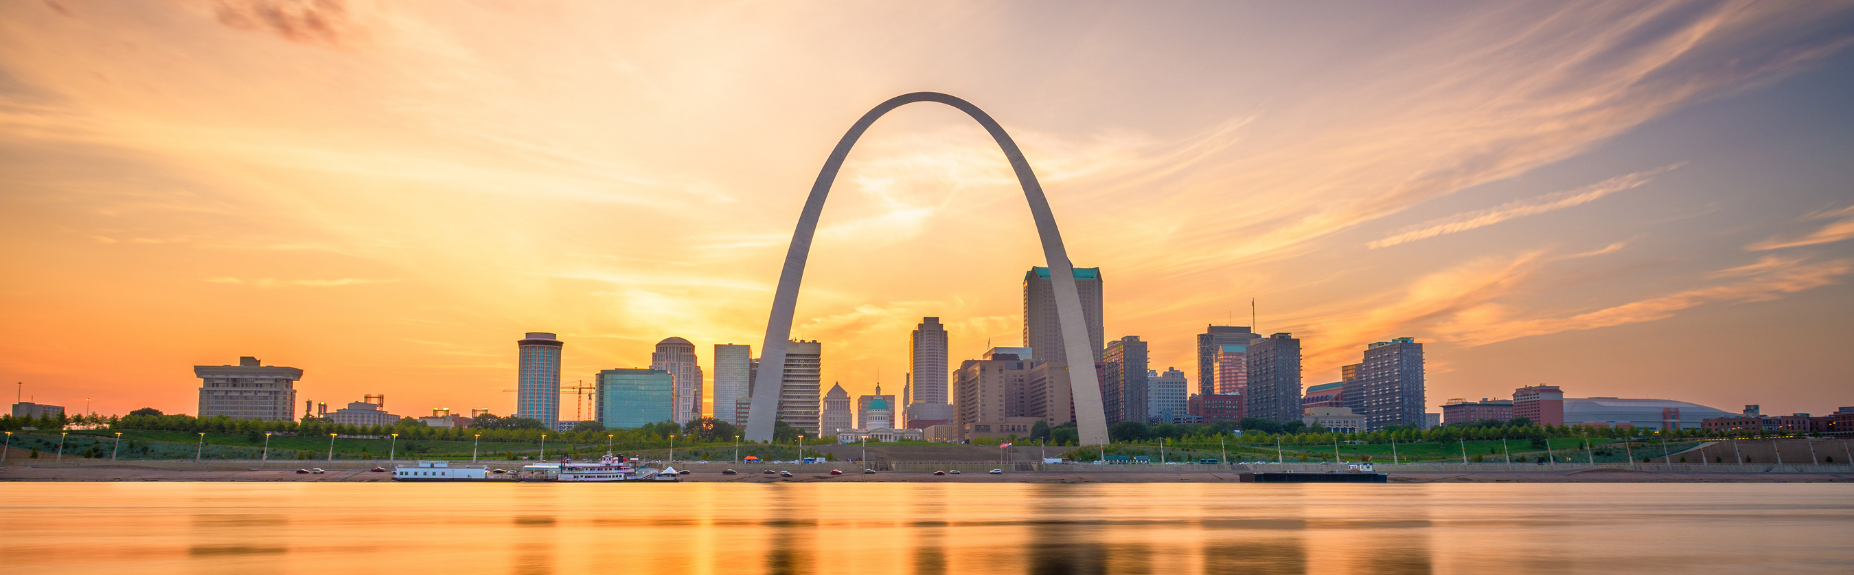 st louis river cruises to and from